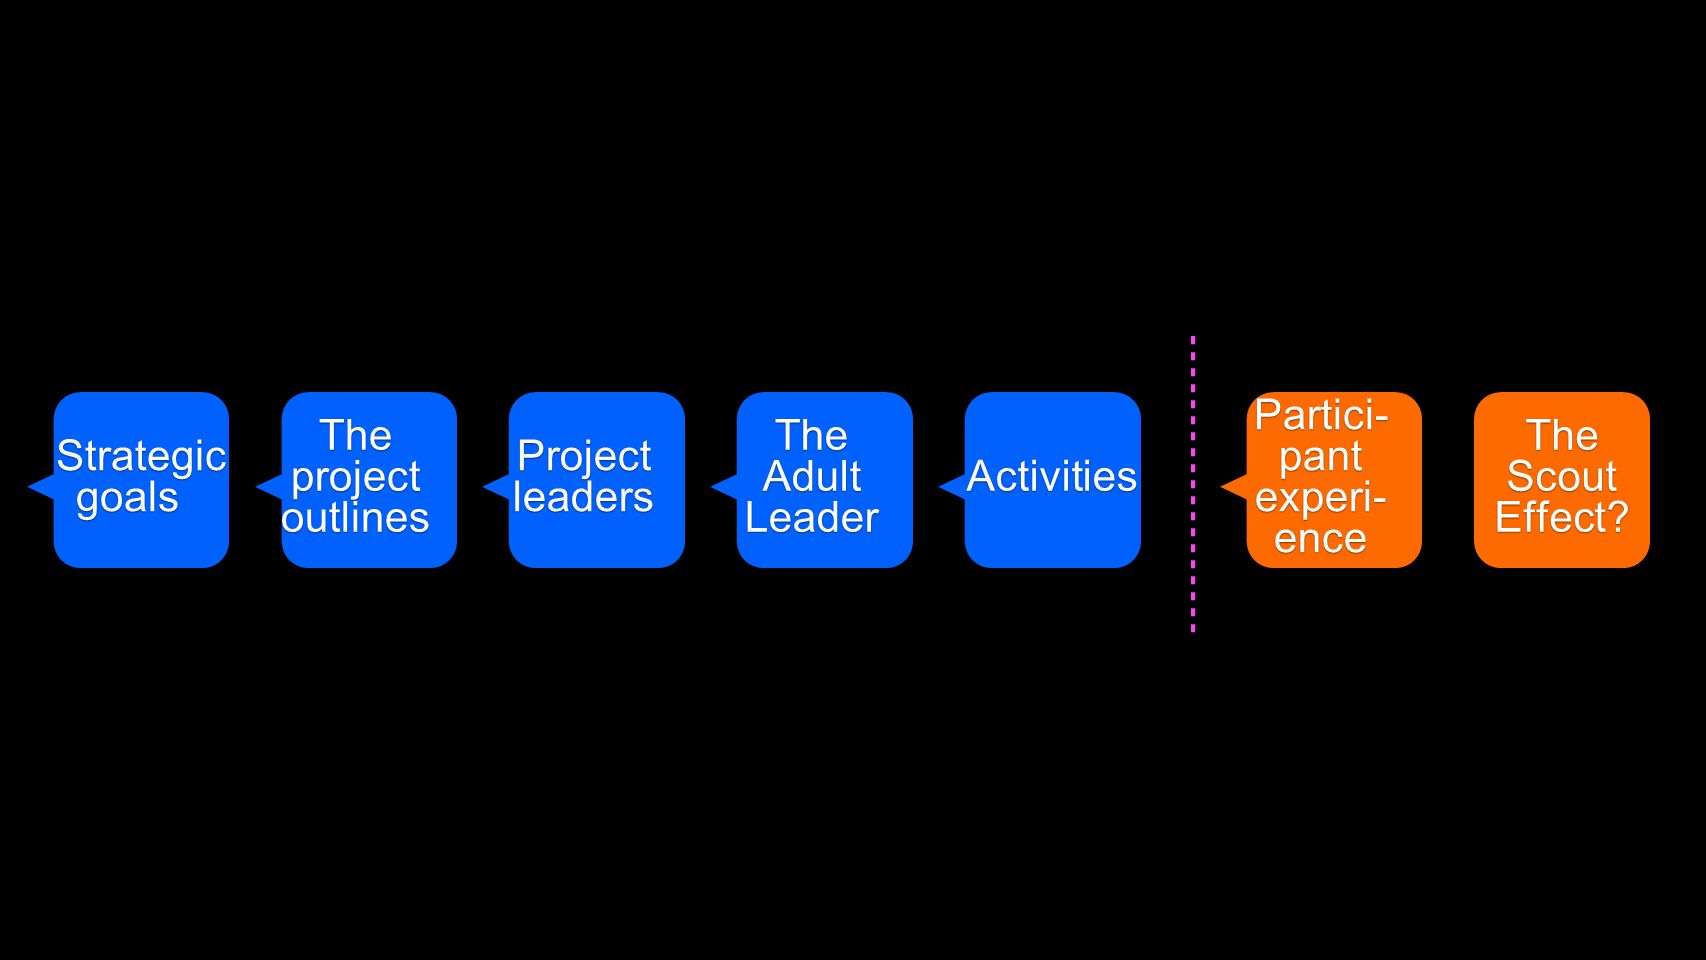 Partici- pant experi- ence The Adult Leader Projectleaders The project outlines Strategic goals The Scout Effect.